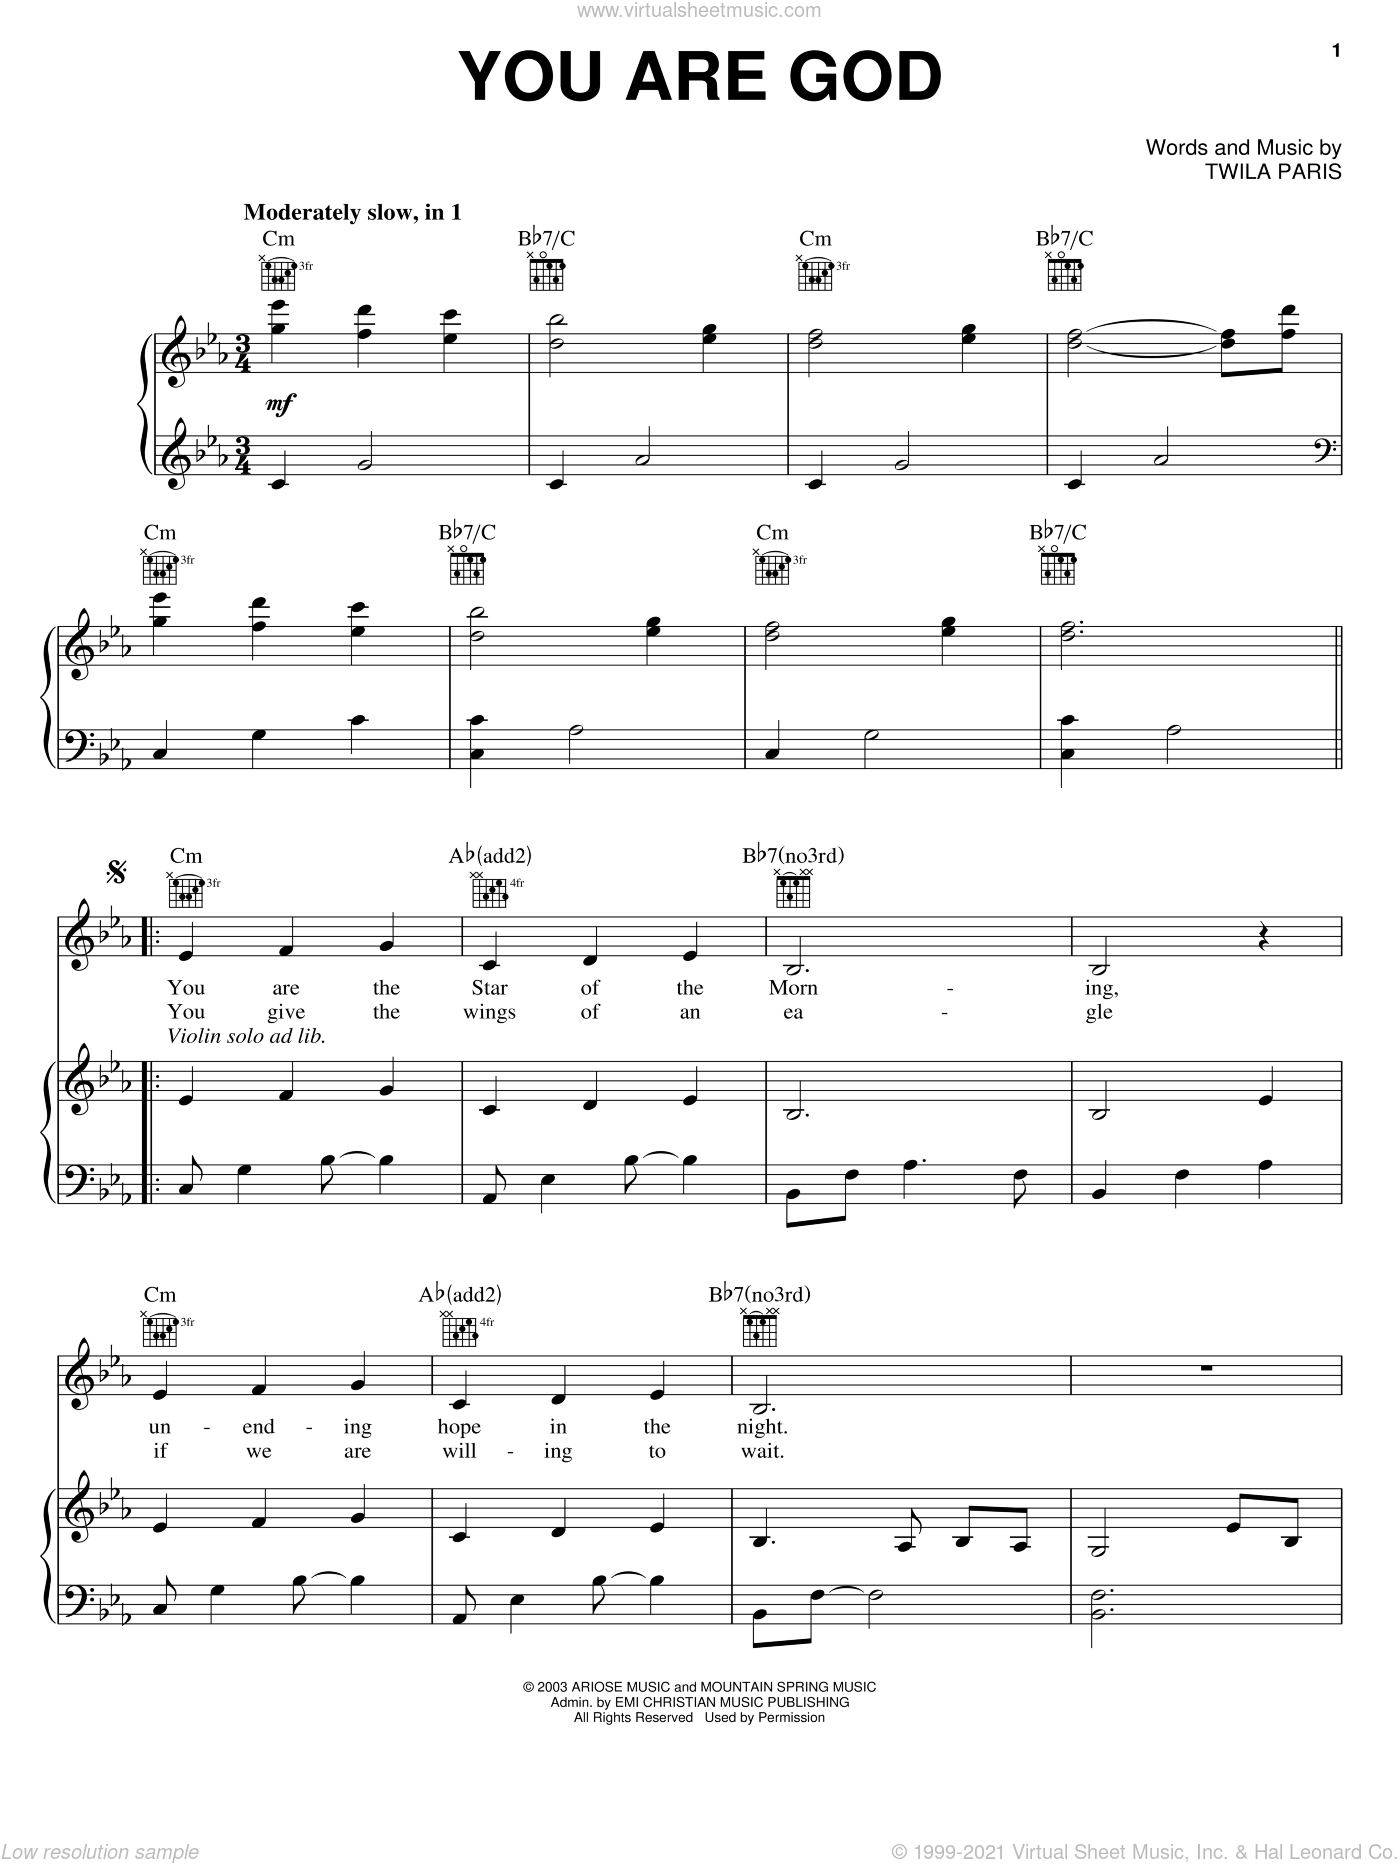 You Are God sheet music for voice, piano or guitar by Twila Paris, intermediate skill level